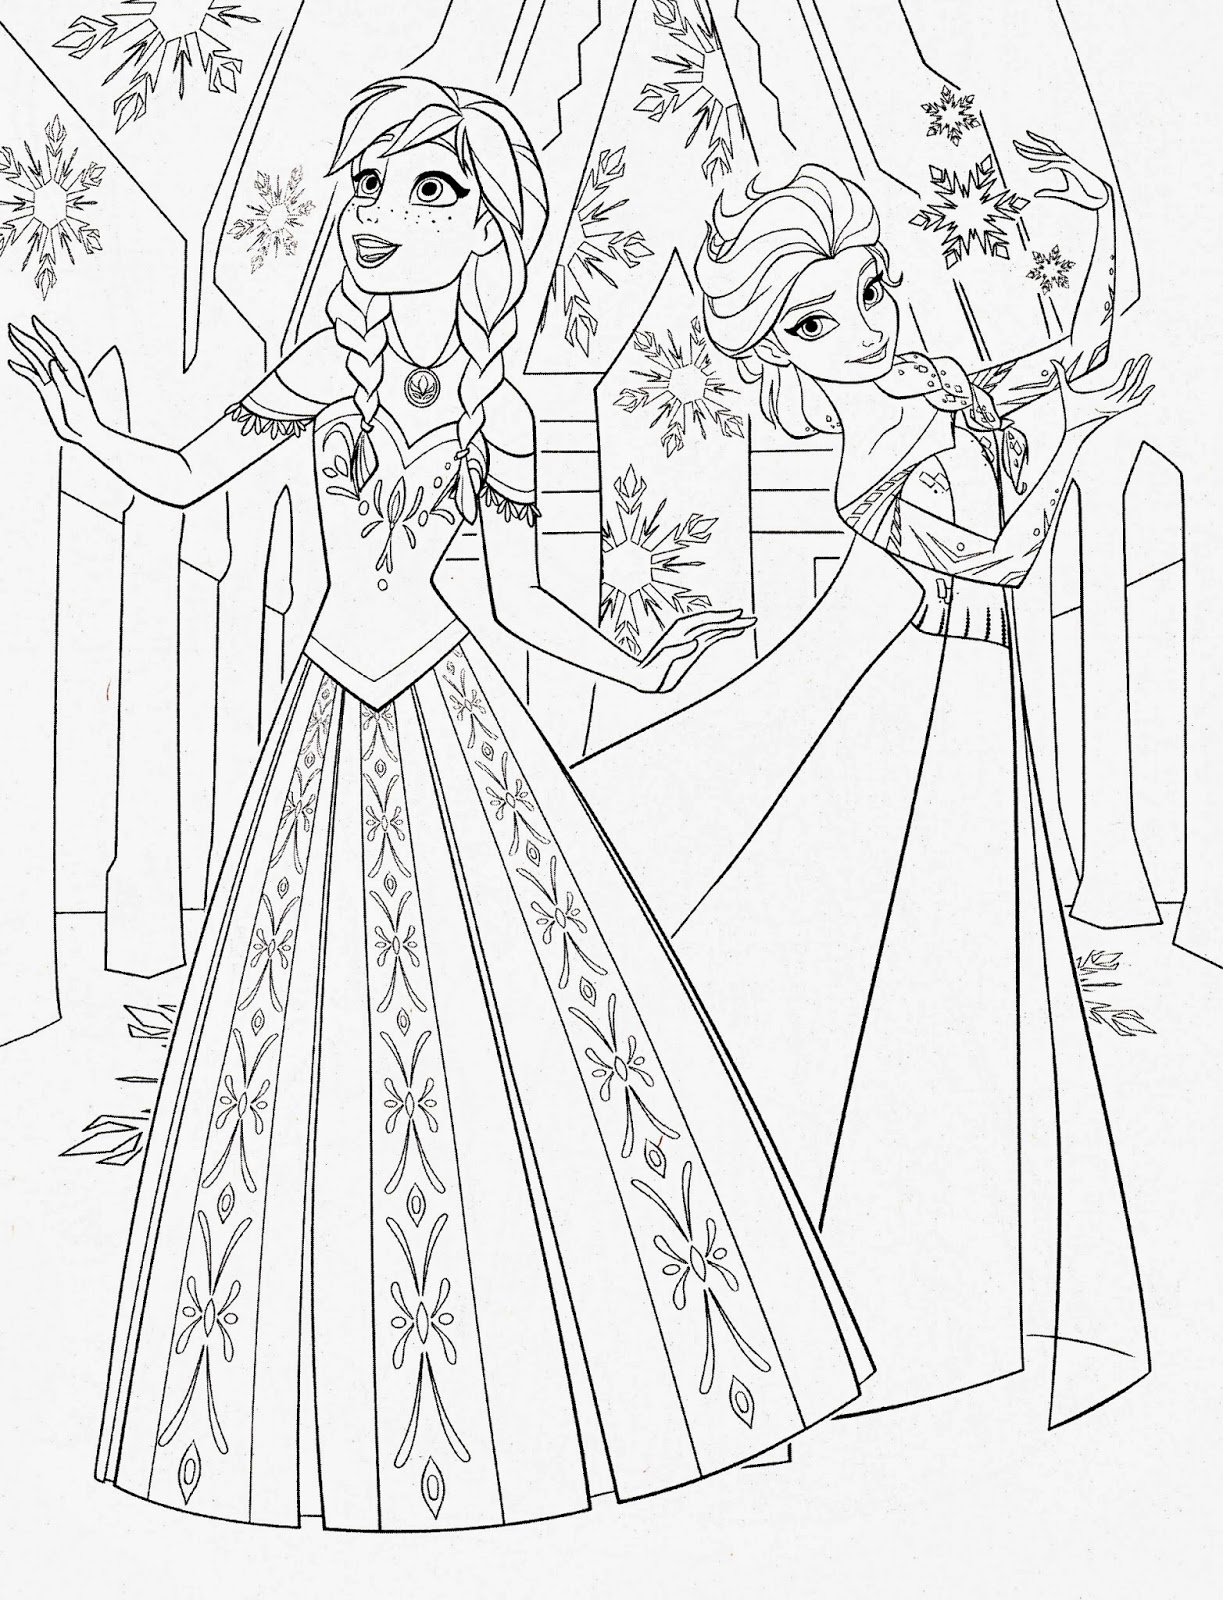 Princess coloring pages for adults